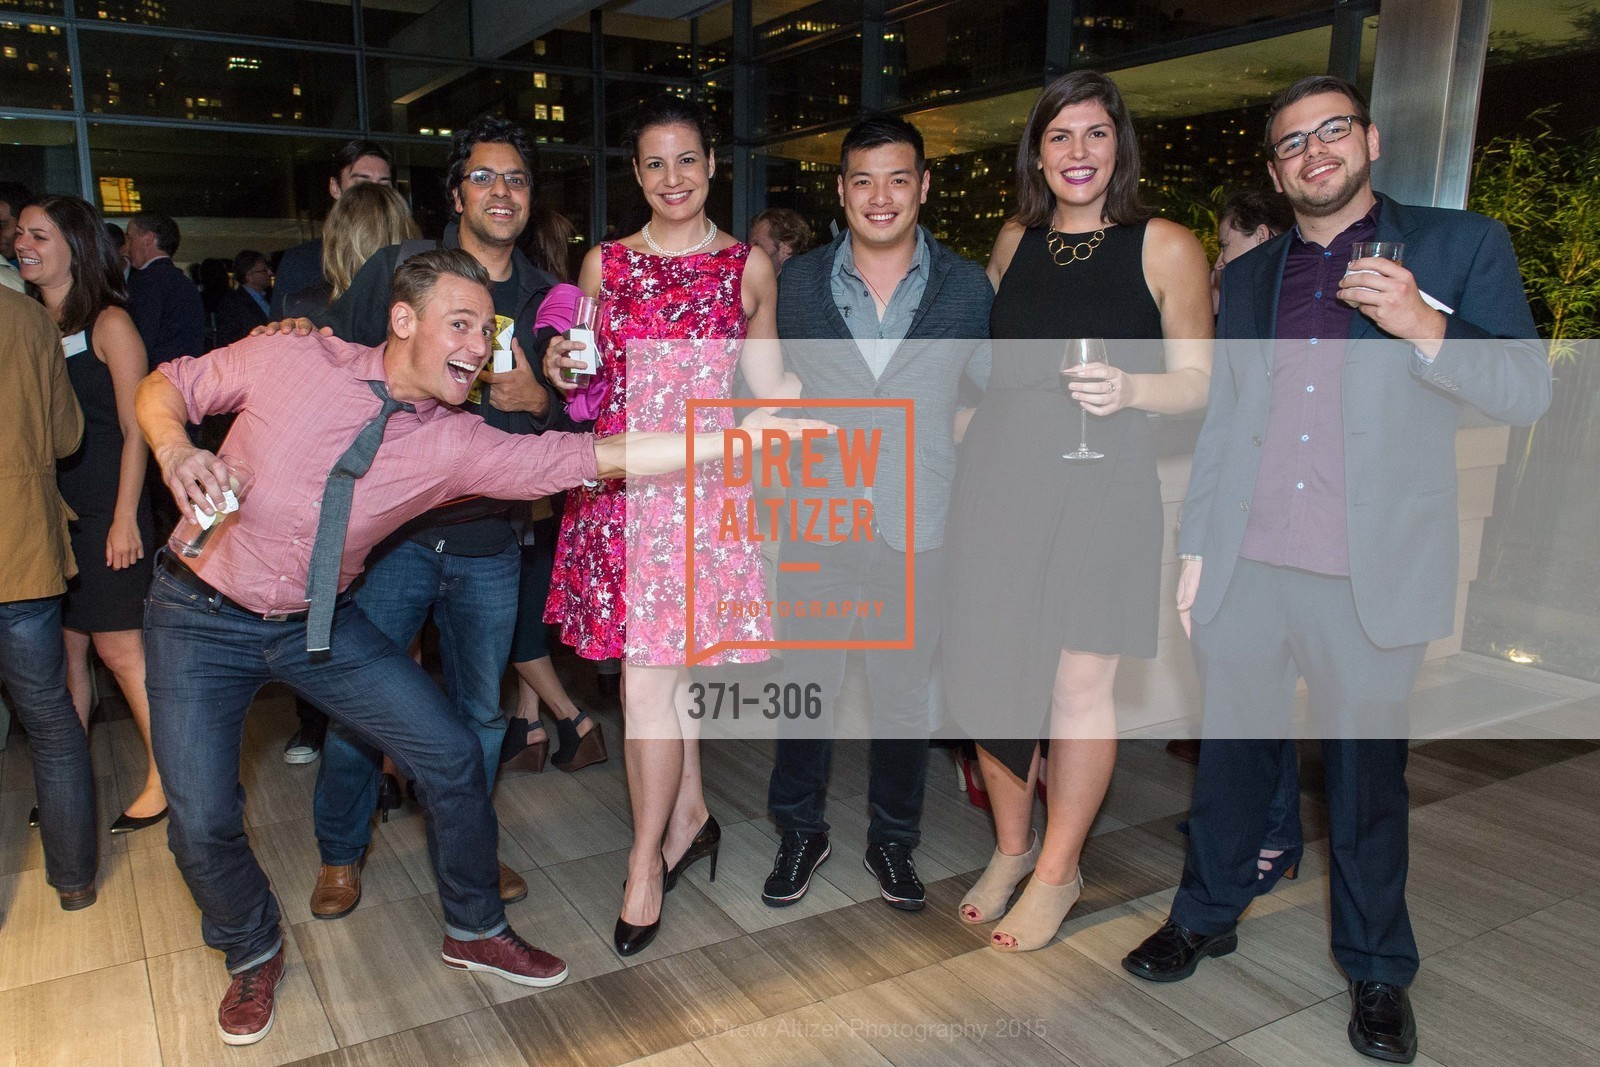 Brett van Sledright, Akshay Sawhney, Nicole Bestard, Hank Rao, Kelsey Axelrod, Anthony Sconza, Sparkpr's Annual Rooftop Soirée, The Battery Penthouse, September 22nd, 2015,Drew Altizer, Drew Altizer Photography, full-service agency, private events, San Francisco photographer, photographer california